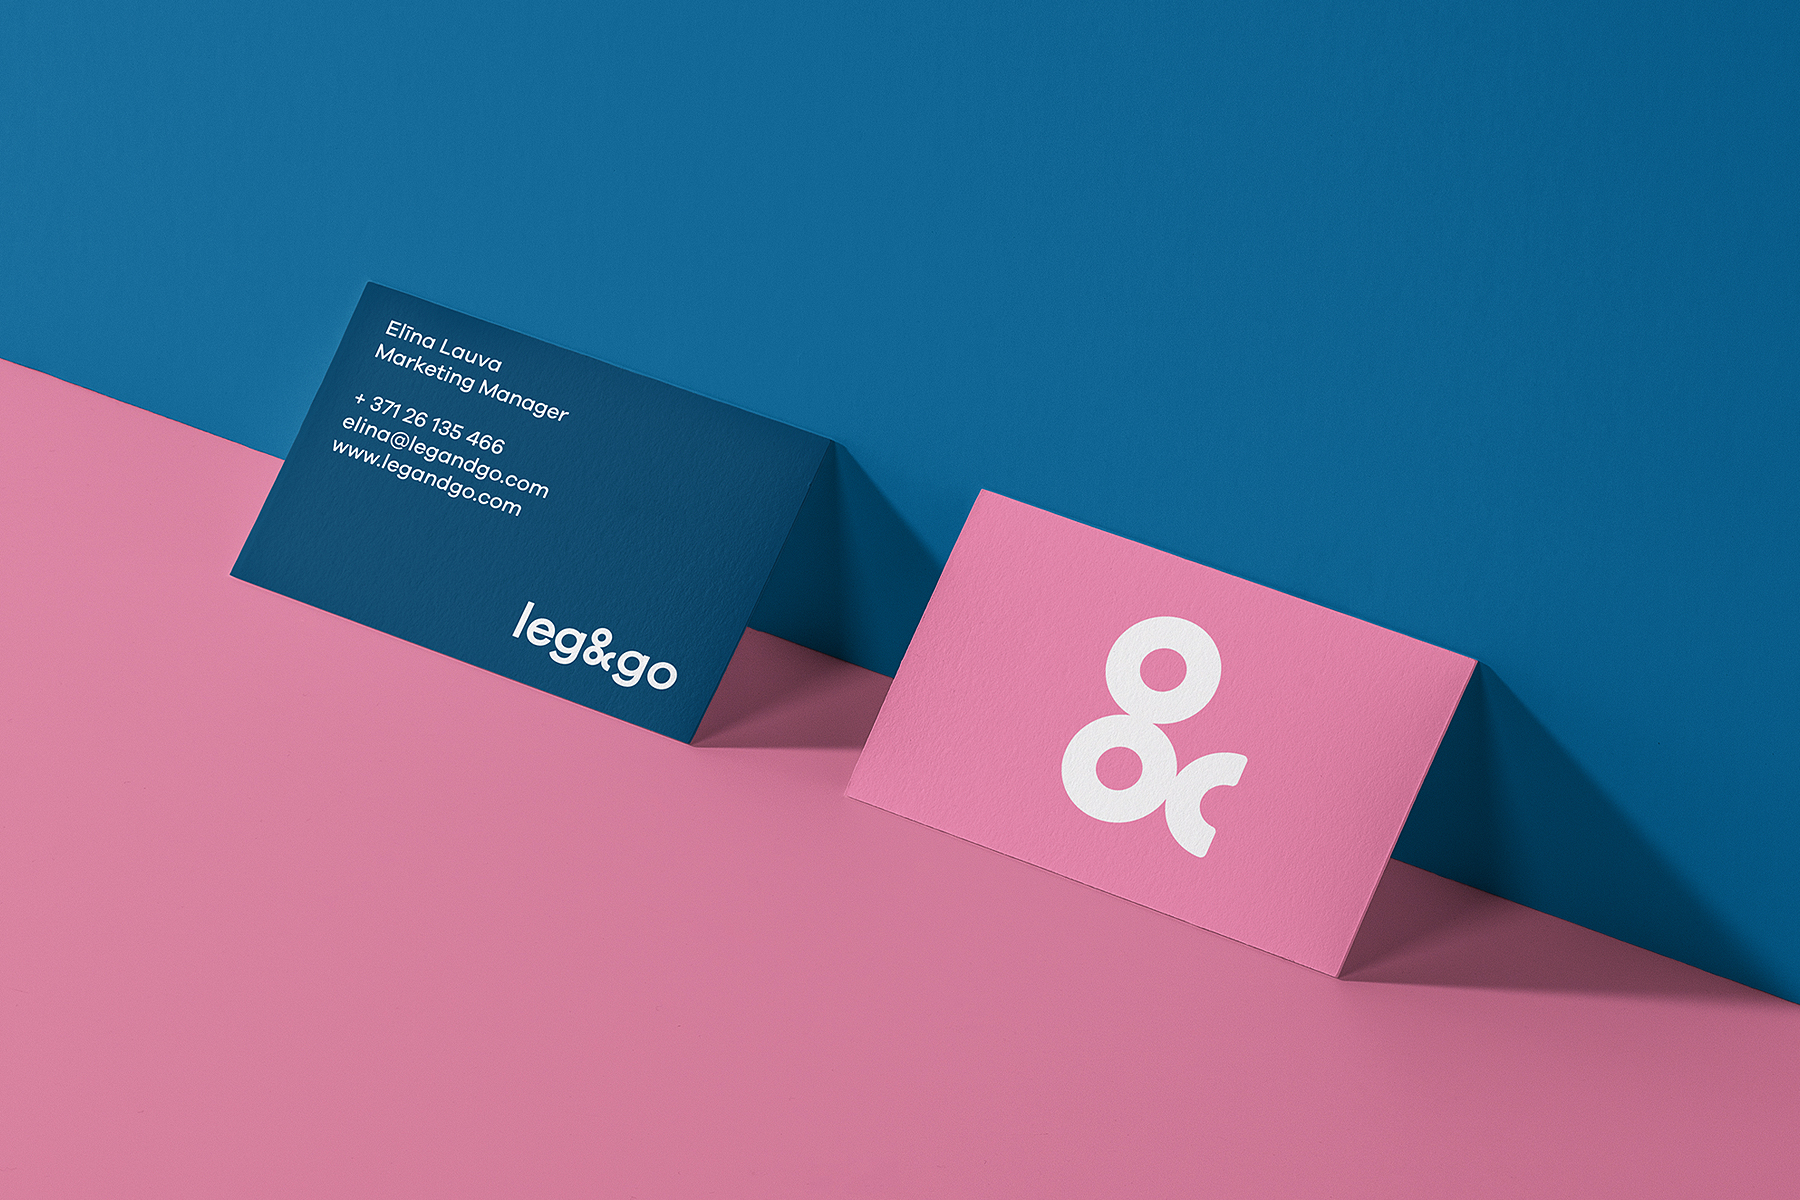 Casestudy of Leg&Go balance bike rebranding, logo update, digital ...